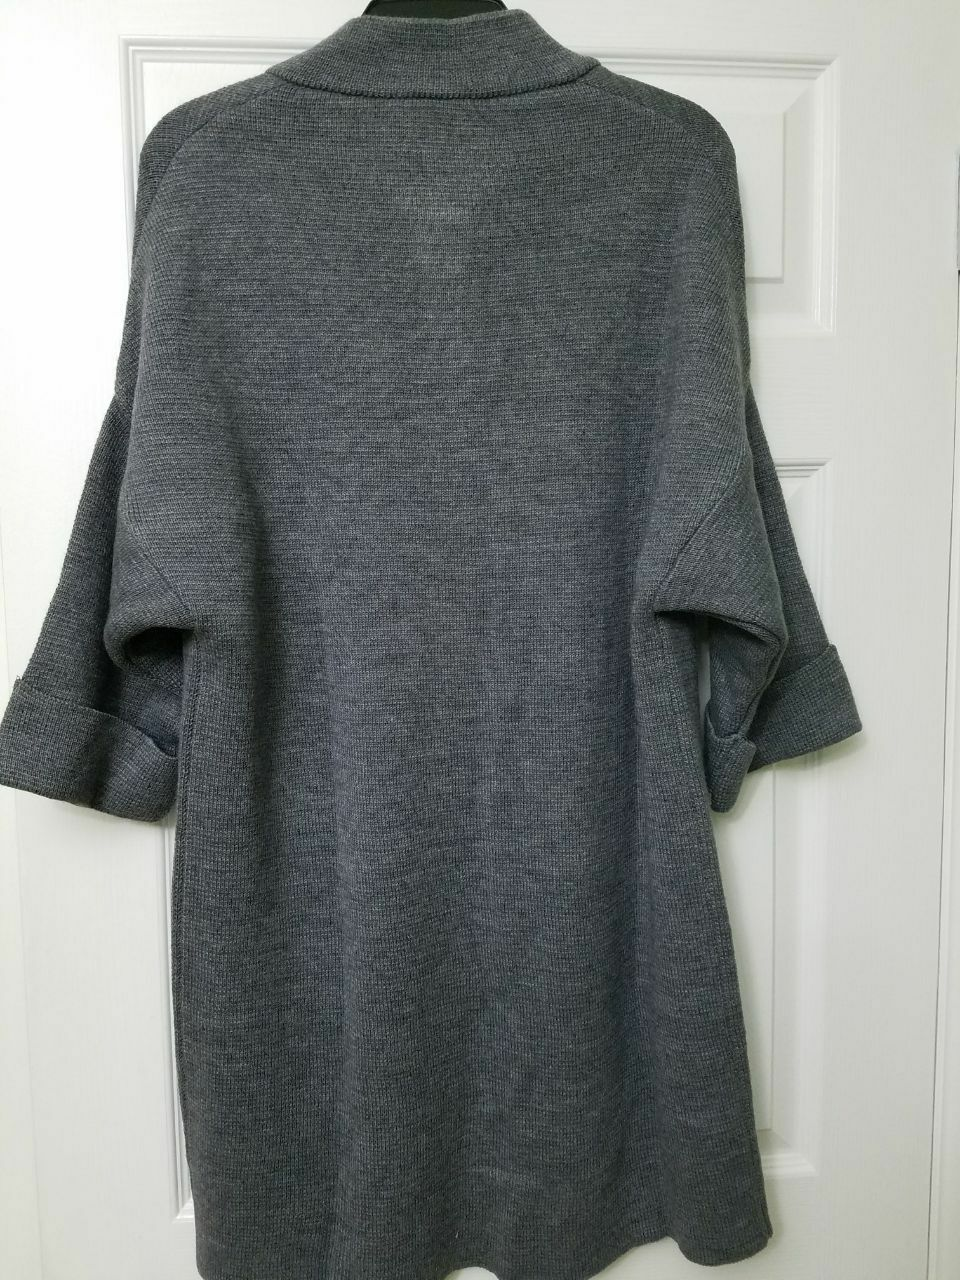 NWT COCOGIO Grey Long Cardigan Coat Sweater Size M M M Made in  5089 a640b8